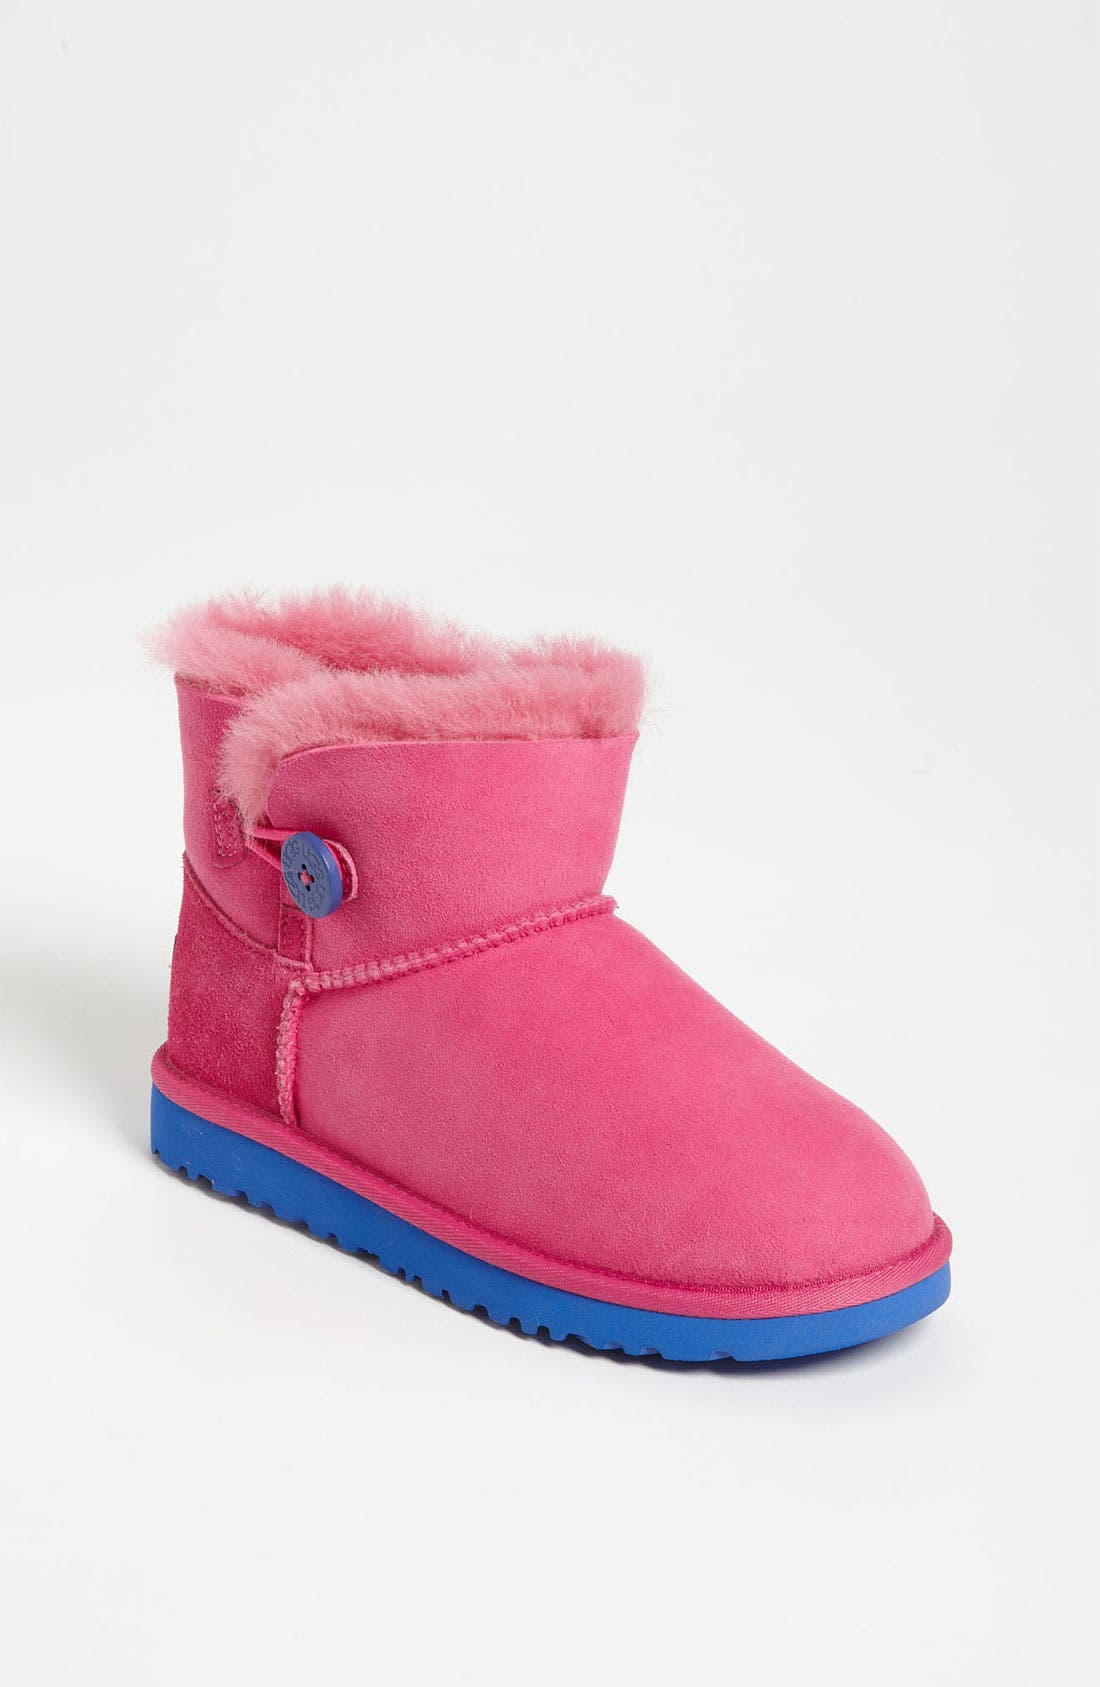 Main Image - UGG® Australia 'Mini Bailey' Button Boot (Walker, Toddler, Little Kid & Big Kid)